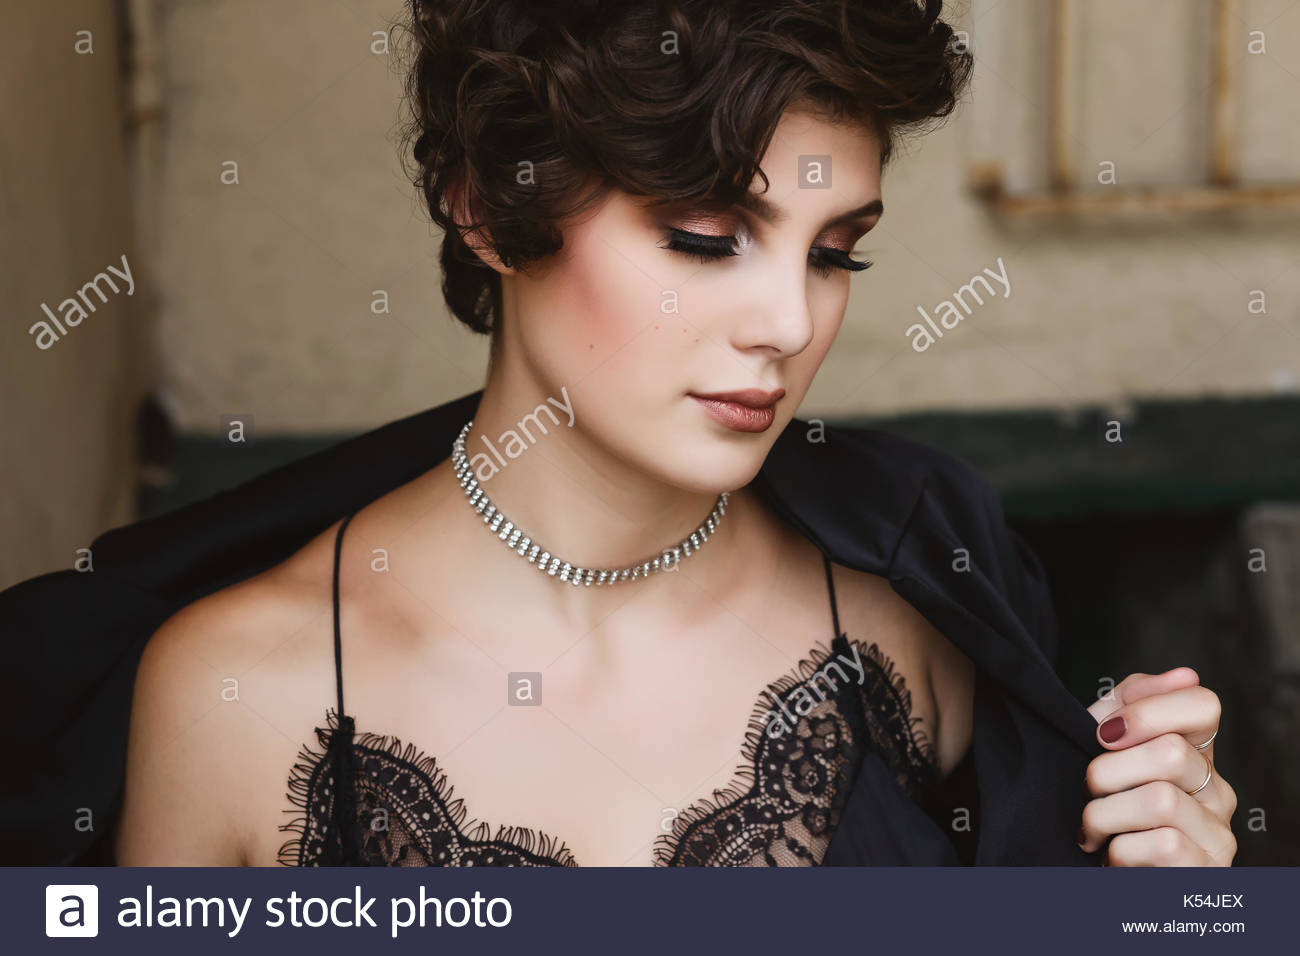 Brunette young woman looking away - Stock Image